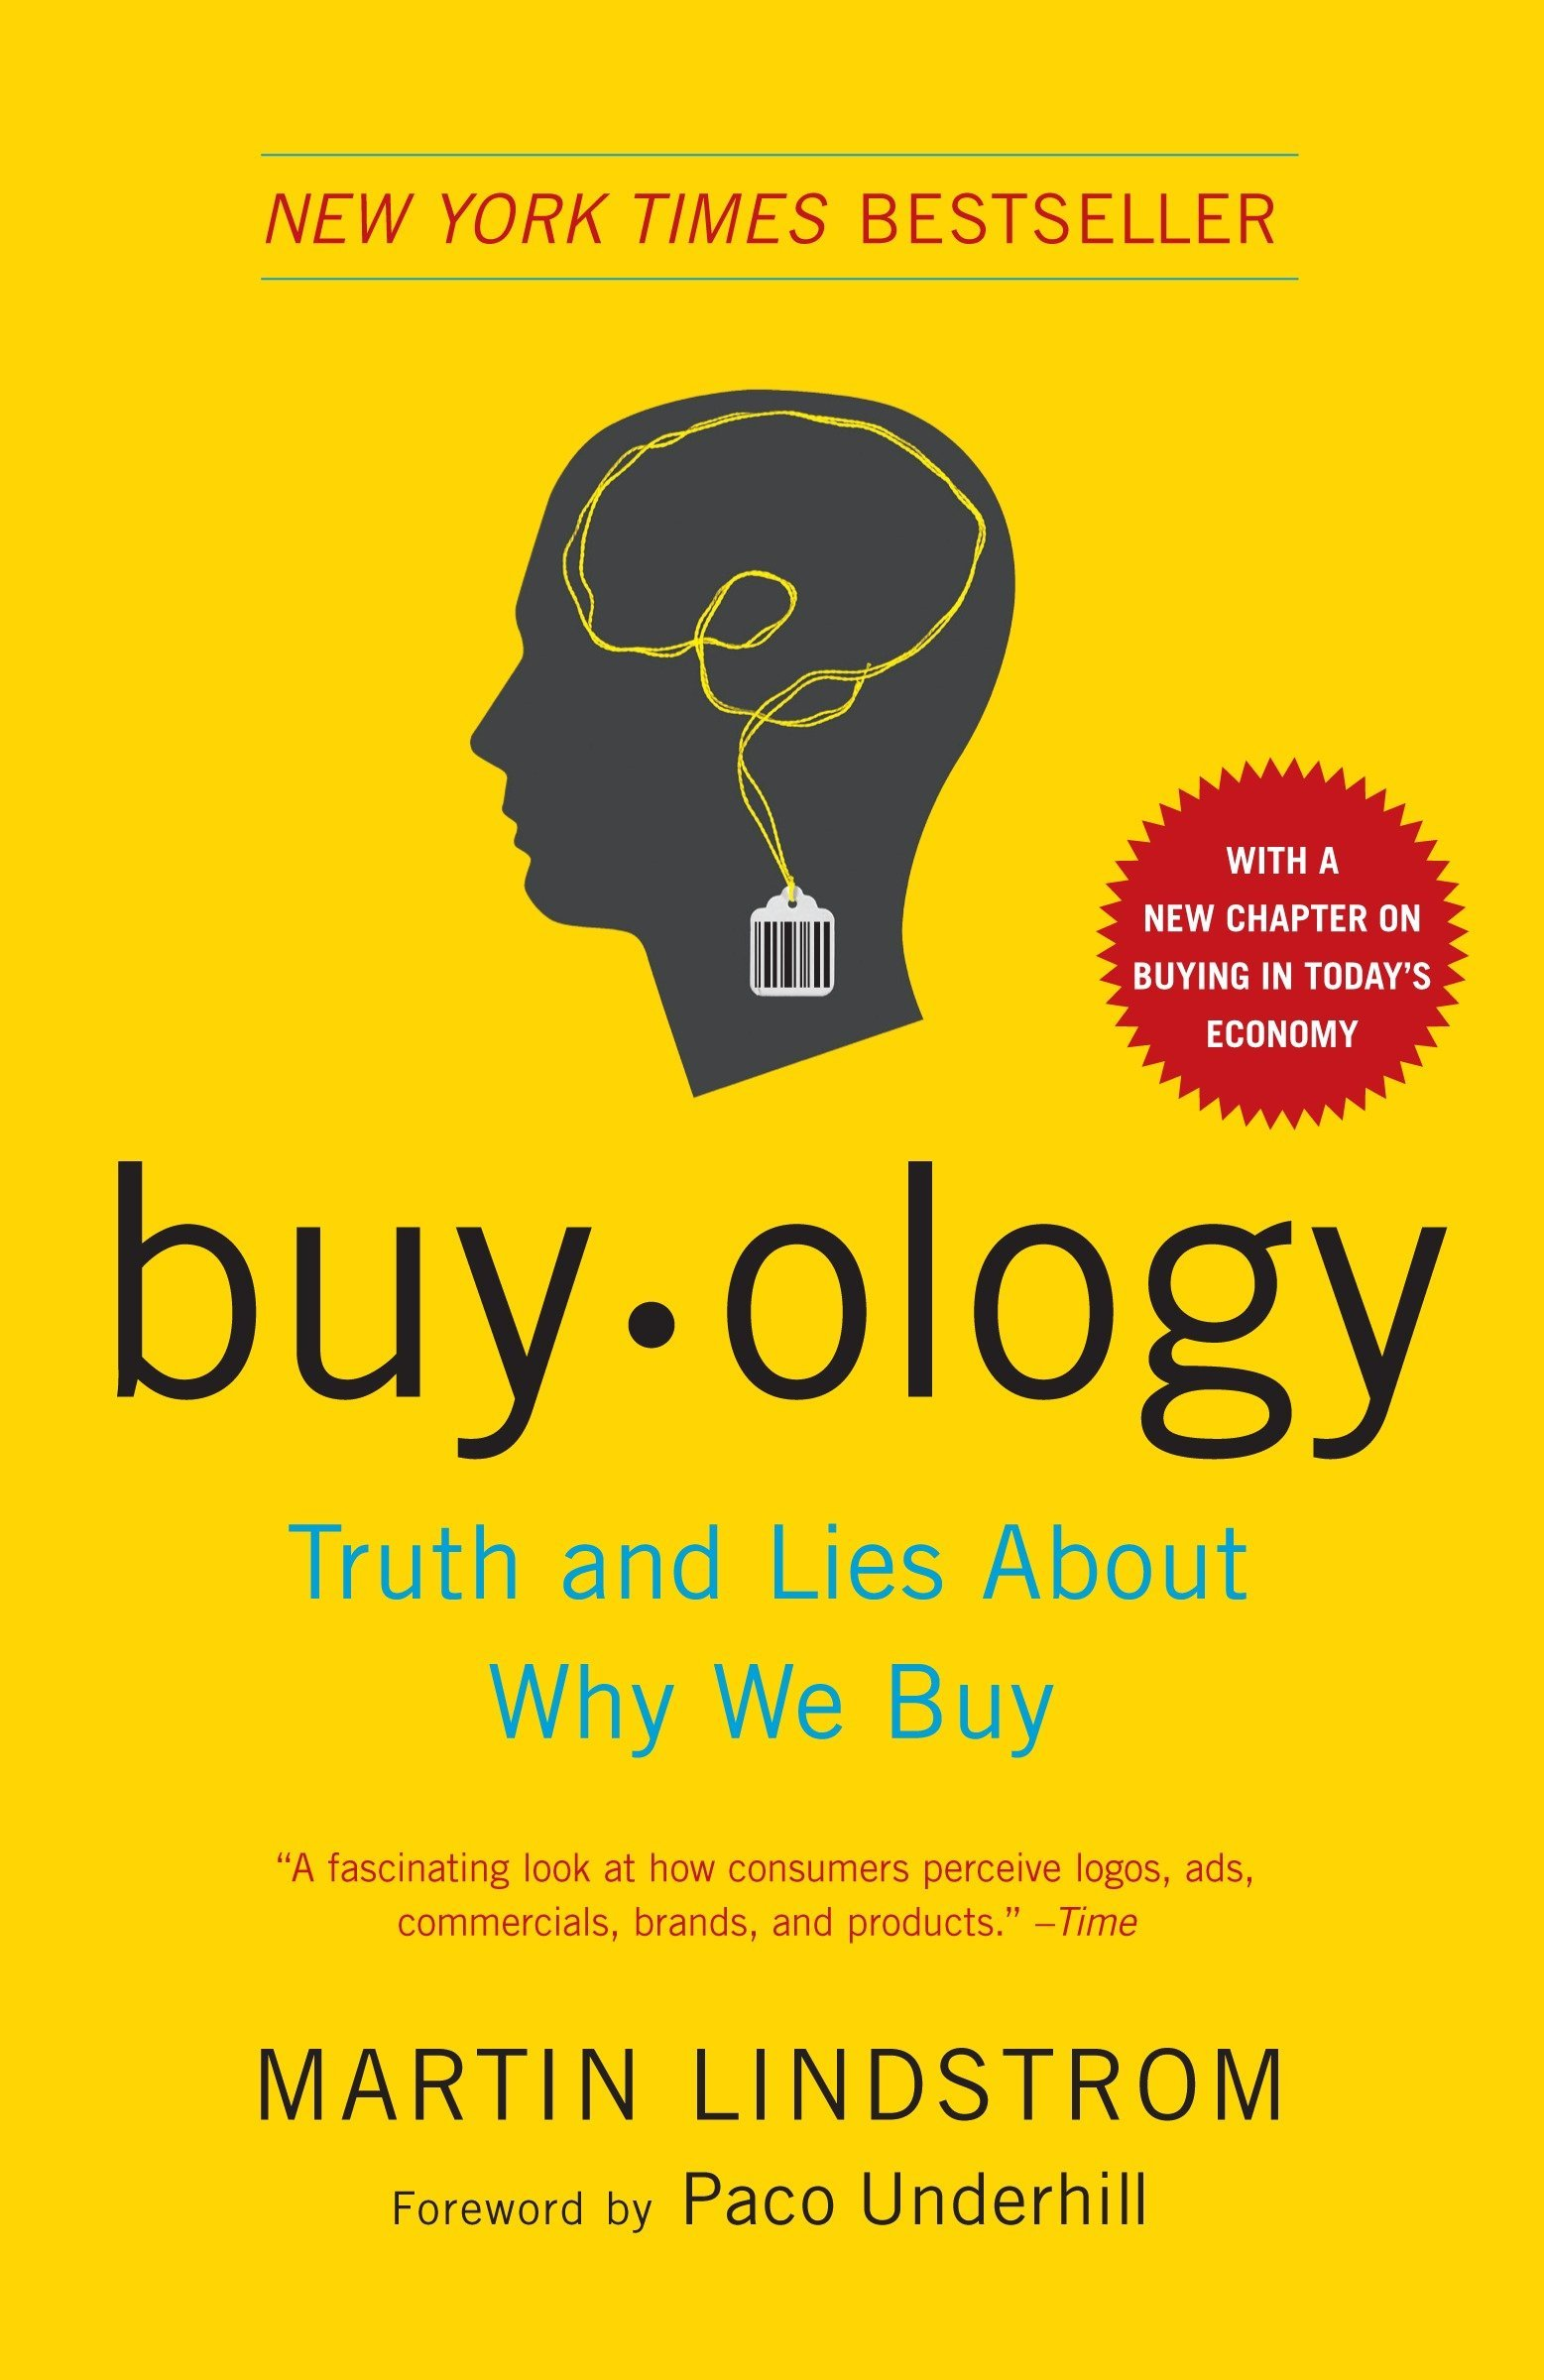 buying in what we buy and who we are